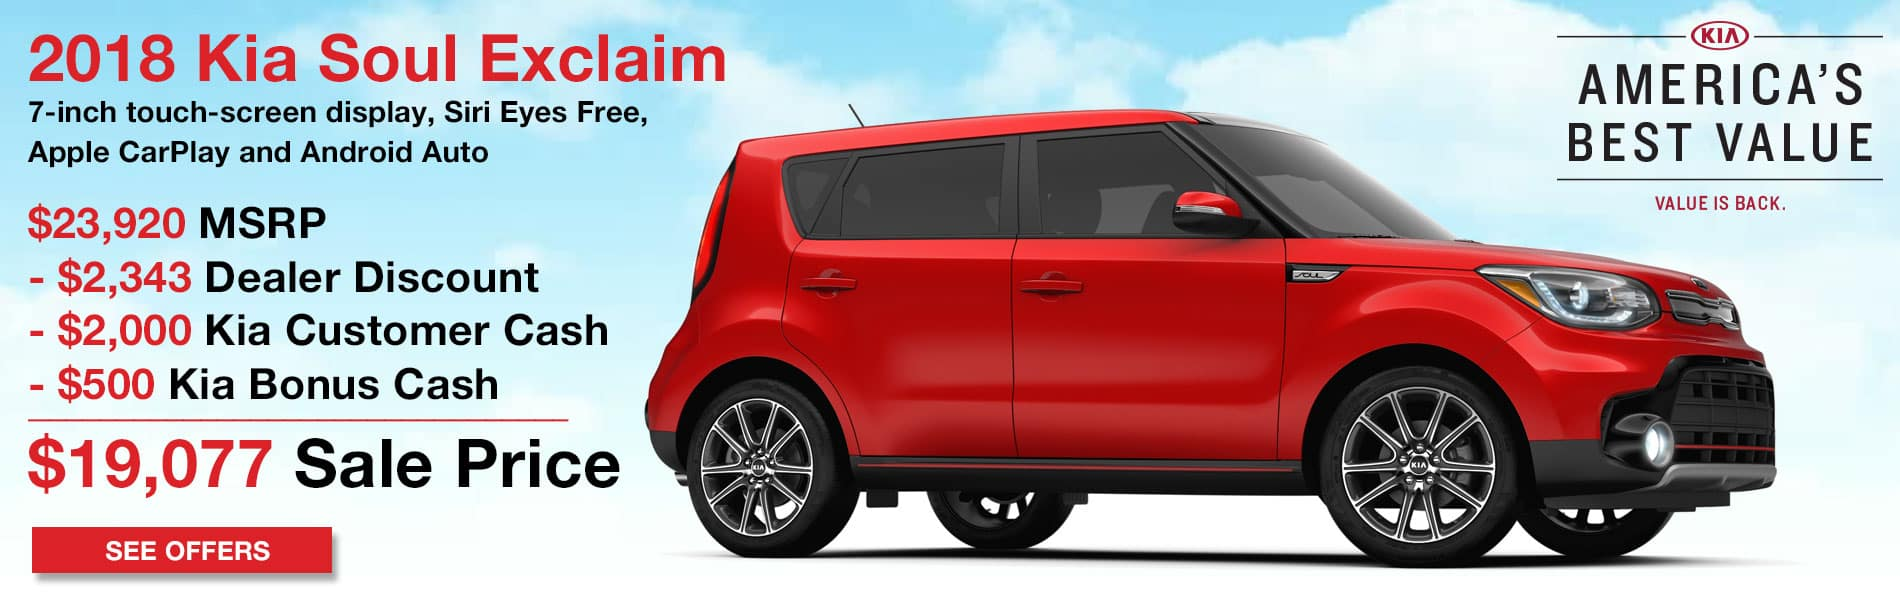 Up to $2,343 in dealer discount and $2,000 in Kia Customer Cash and $500 in Kia Bonus Cash on the New 2018 Kia Soul Exclaim